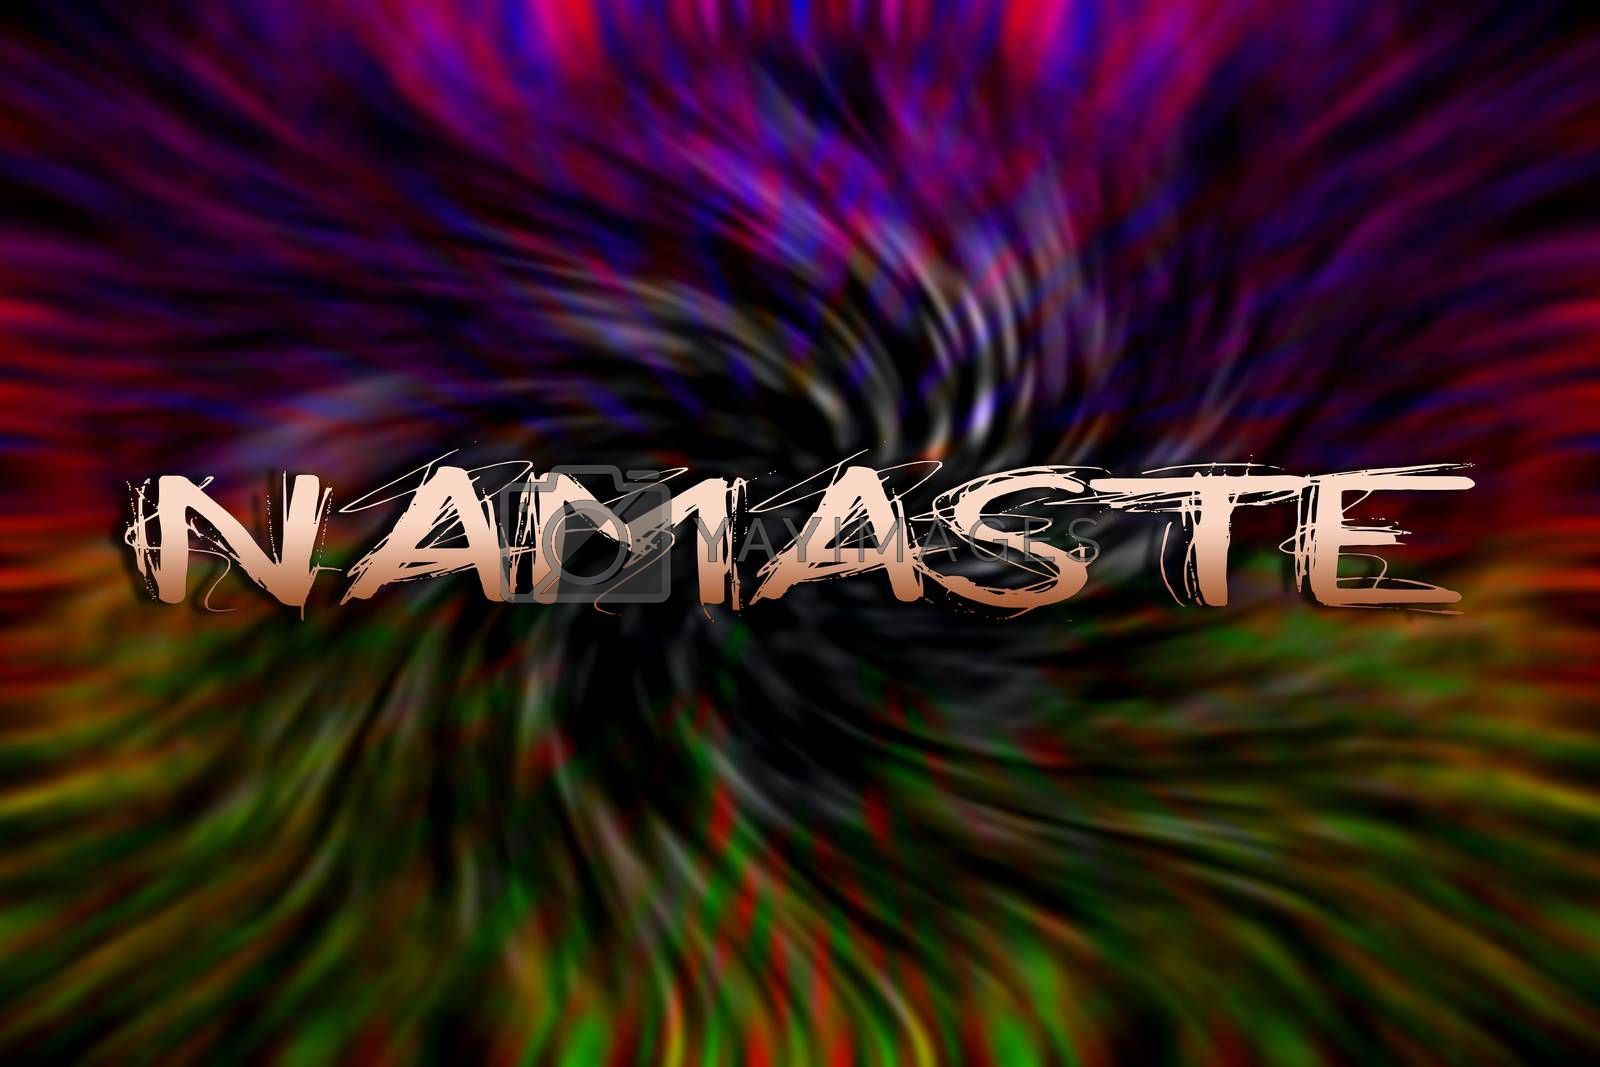 Namaste text quote in psychedelic background wallpaper fine prints by BakalaeroZz Photography